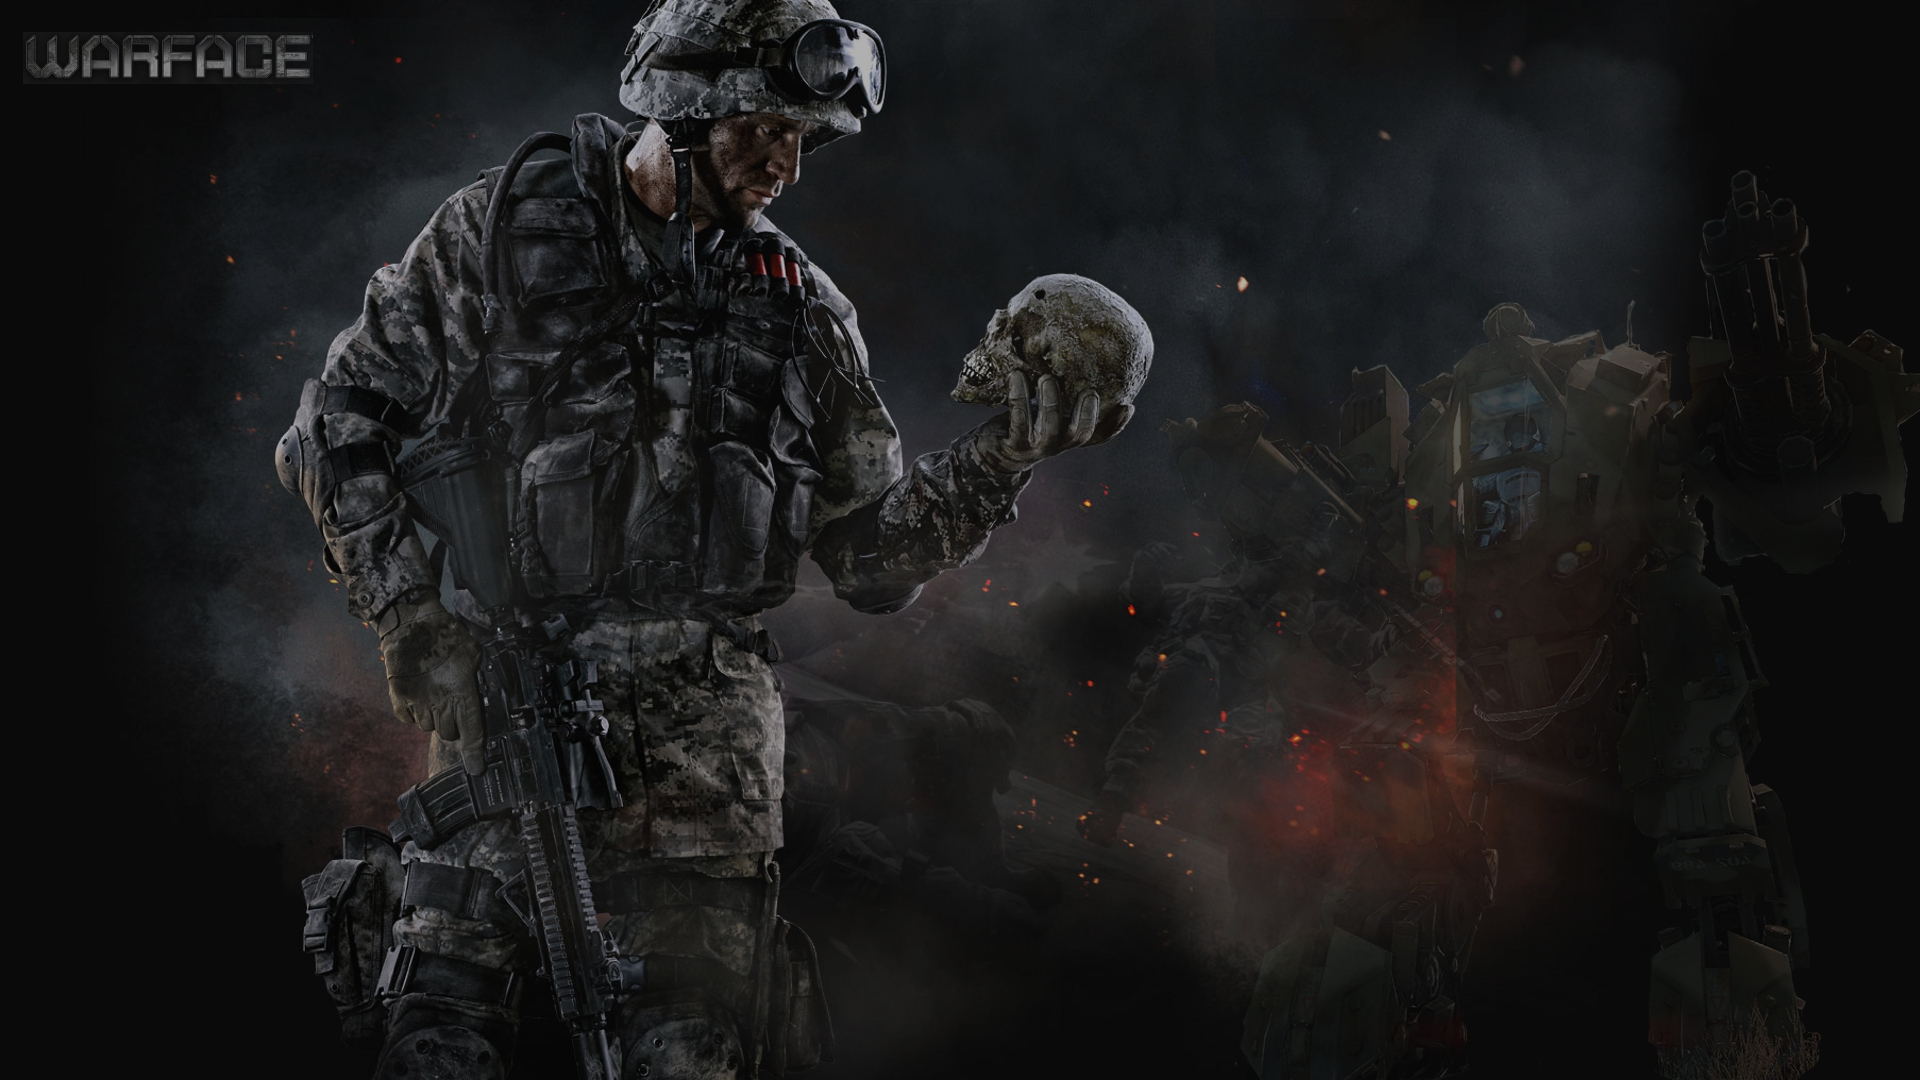 Skull Soldier Wallpaper Hd: Warface Wallpapers Images Photos Pictures Backgrounds